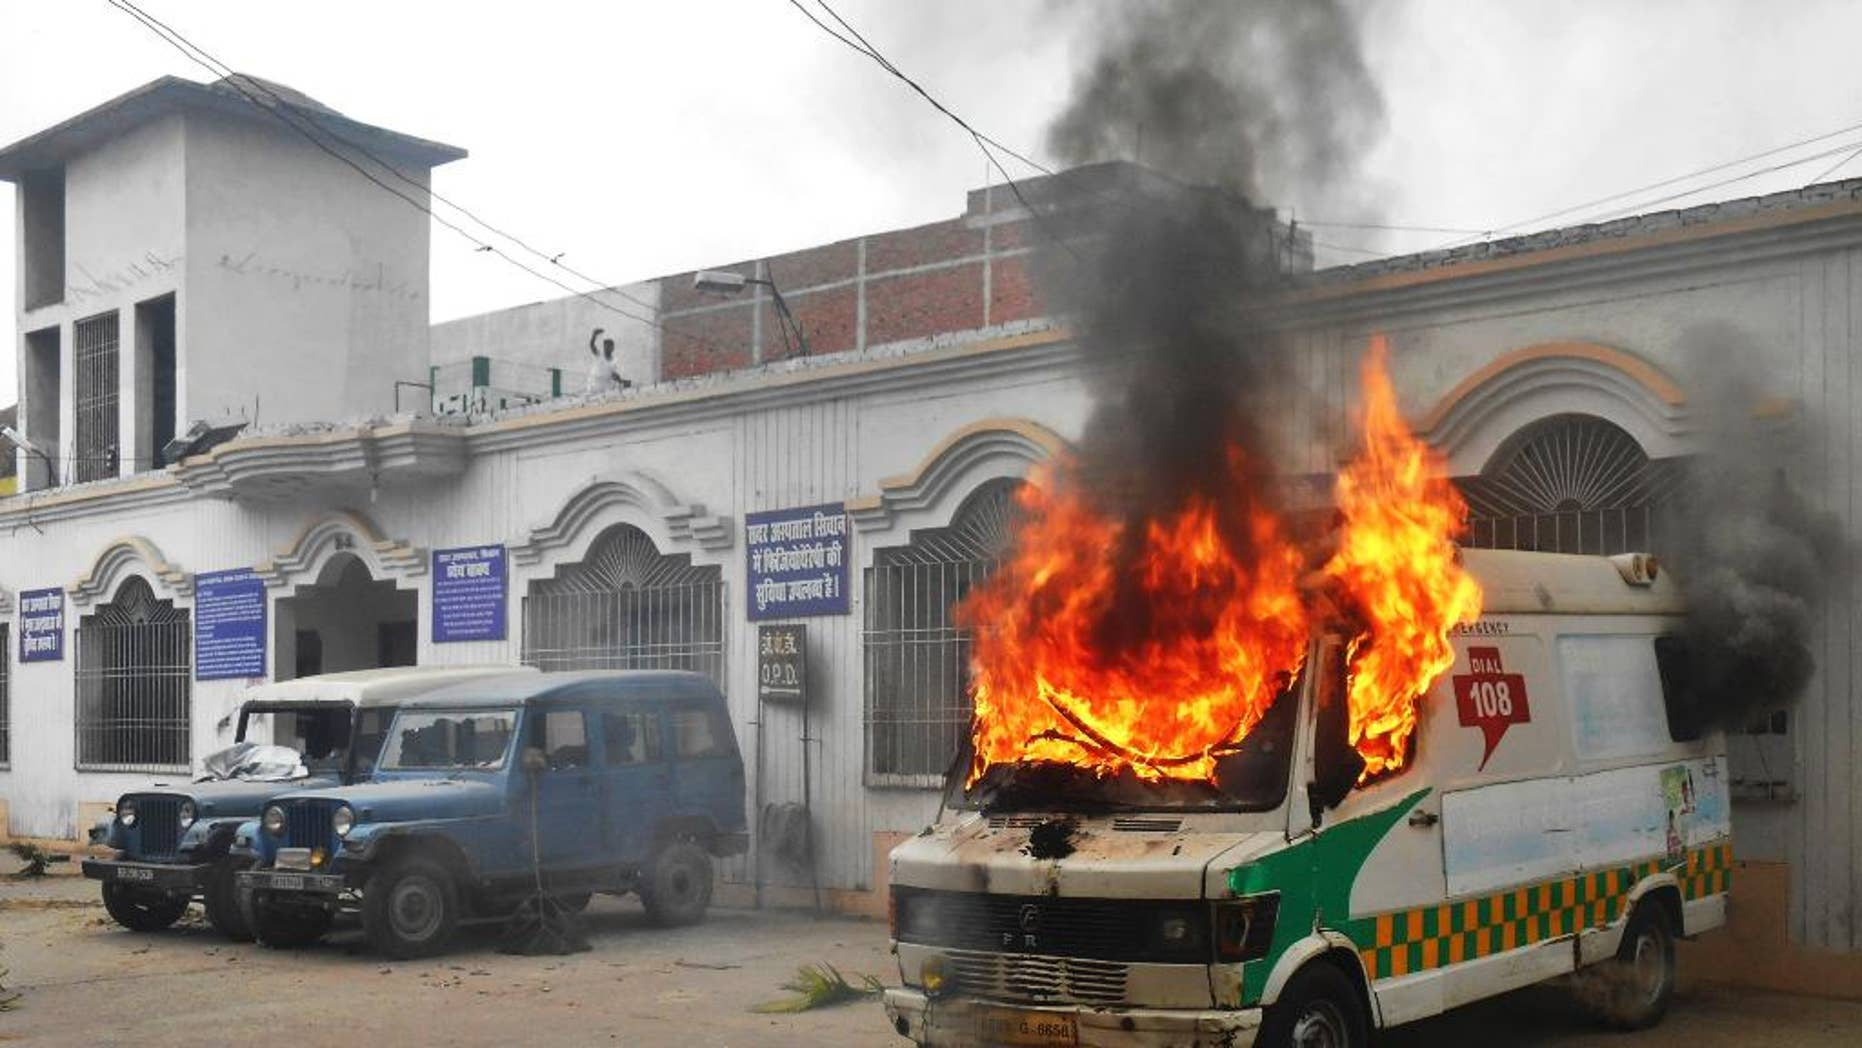 An ambulance goes up in flames after it was set fire by angry villagers at a government hospital in Siwan, about 200 kilometers (125 miles) north of Patna, Bihar state, India, Monday, April 20, 2015. Villagers who took injured students of a road accident to this hospital became incensed when they discovered no doctors were present. About 100 people attacked the hospital in anger and burned six vehicles, including this ambulance. (AP Photo/Abhinav Patel)